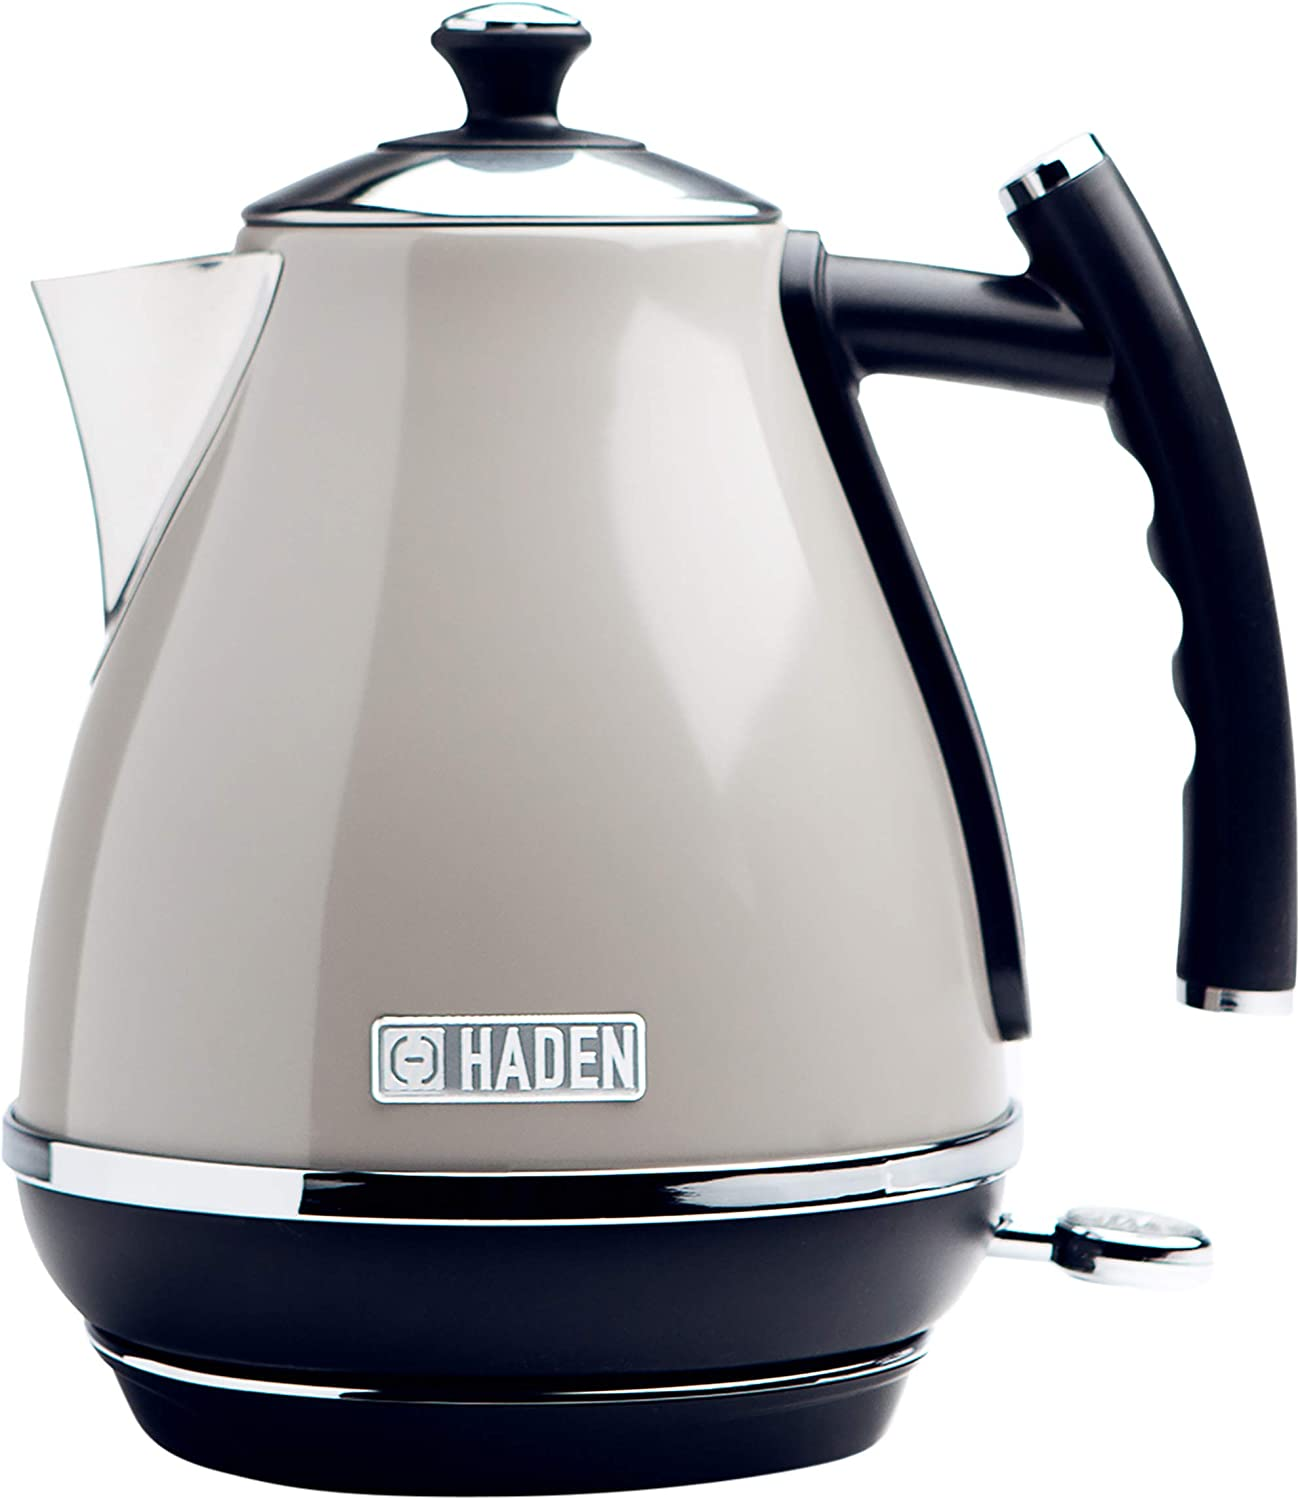 Haden COTSWOLD 1.7 Liter Stainless Steel Retro Electric Kettle with Auto Shut-Off and Boil-Dry Protection in Putty Beige